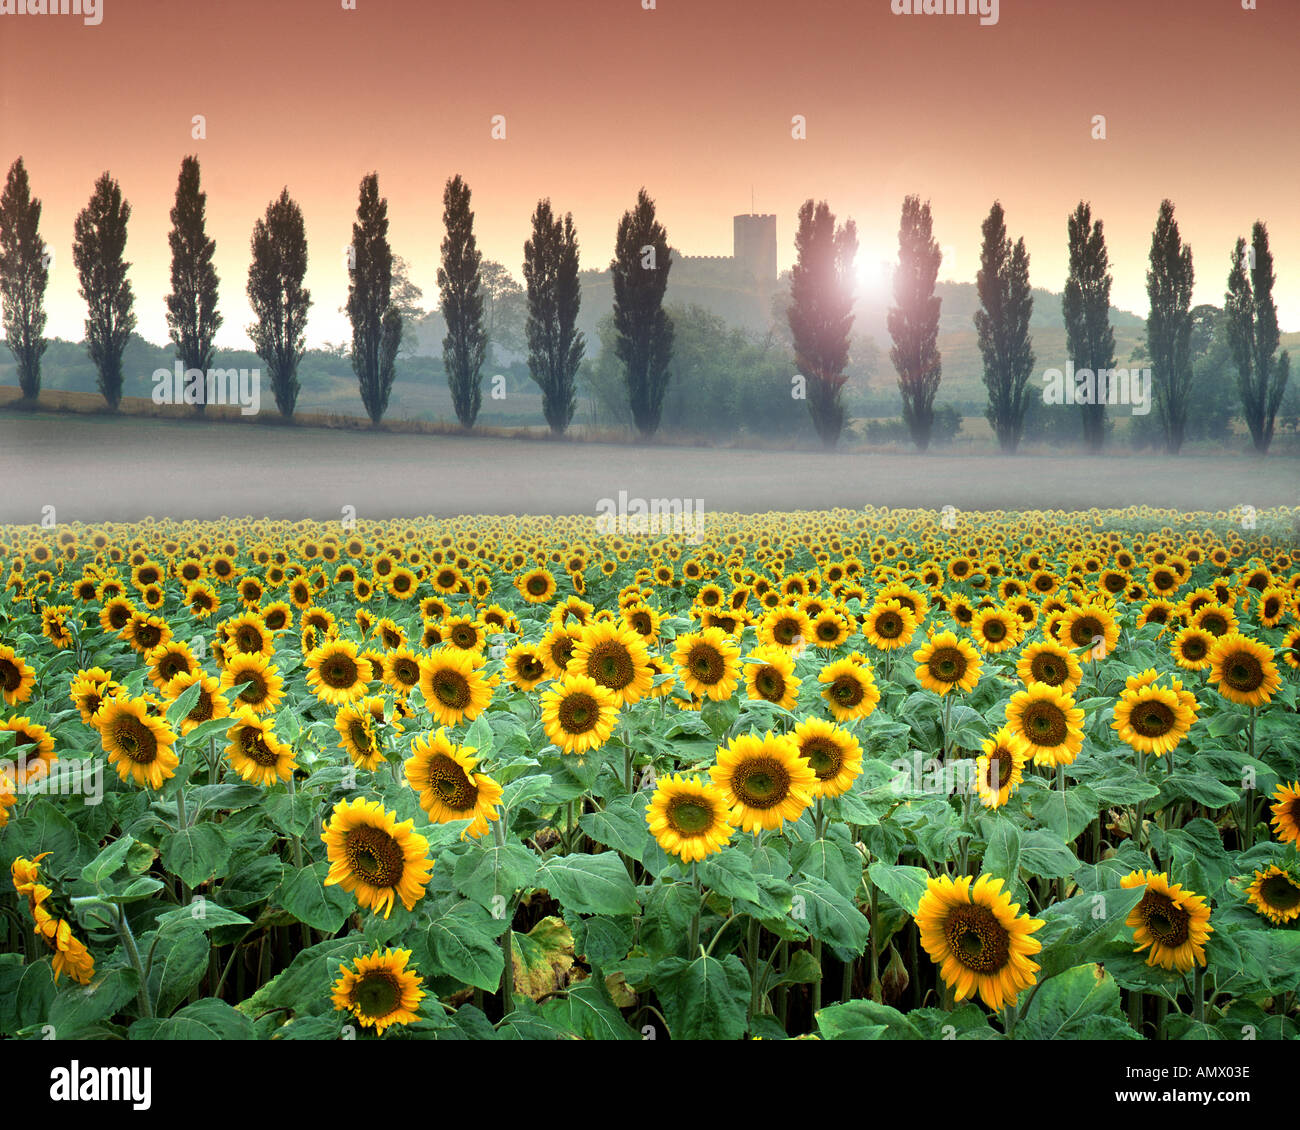 Go - LEICESTERSHIRE : champ de tournesol à Breedon sur la Colline Photo Stock